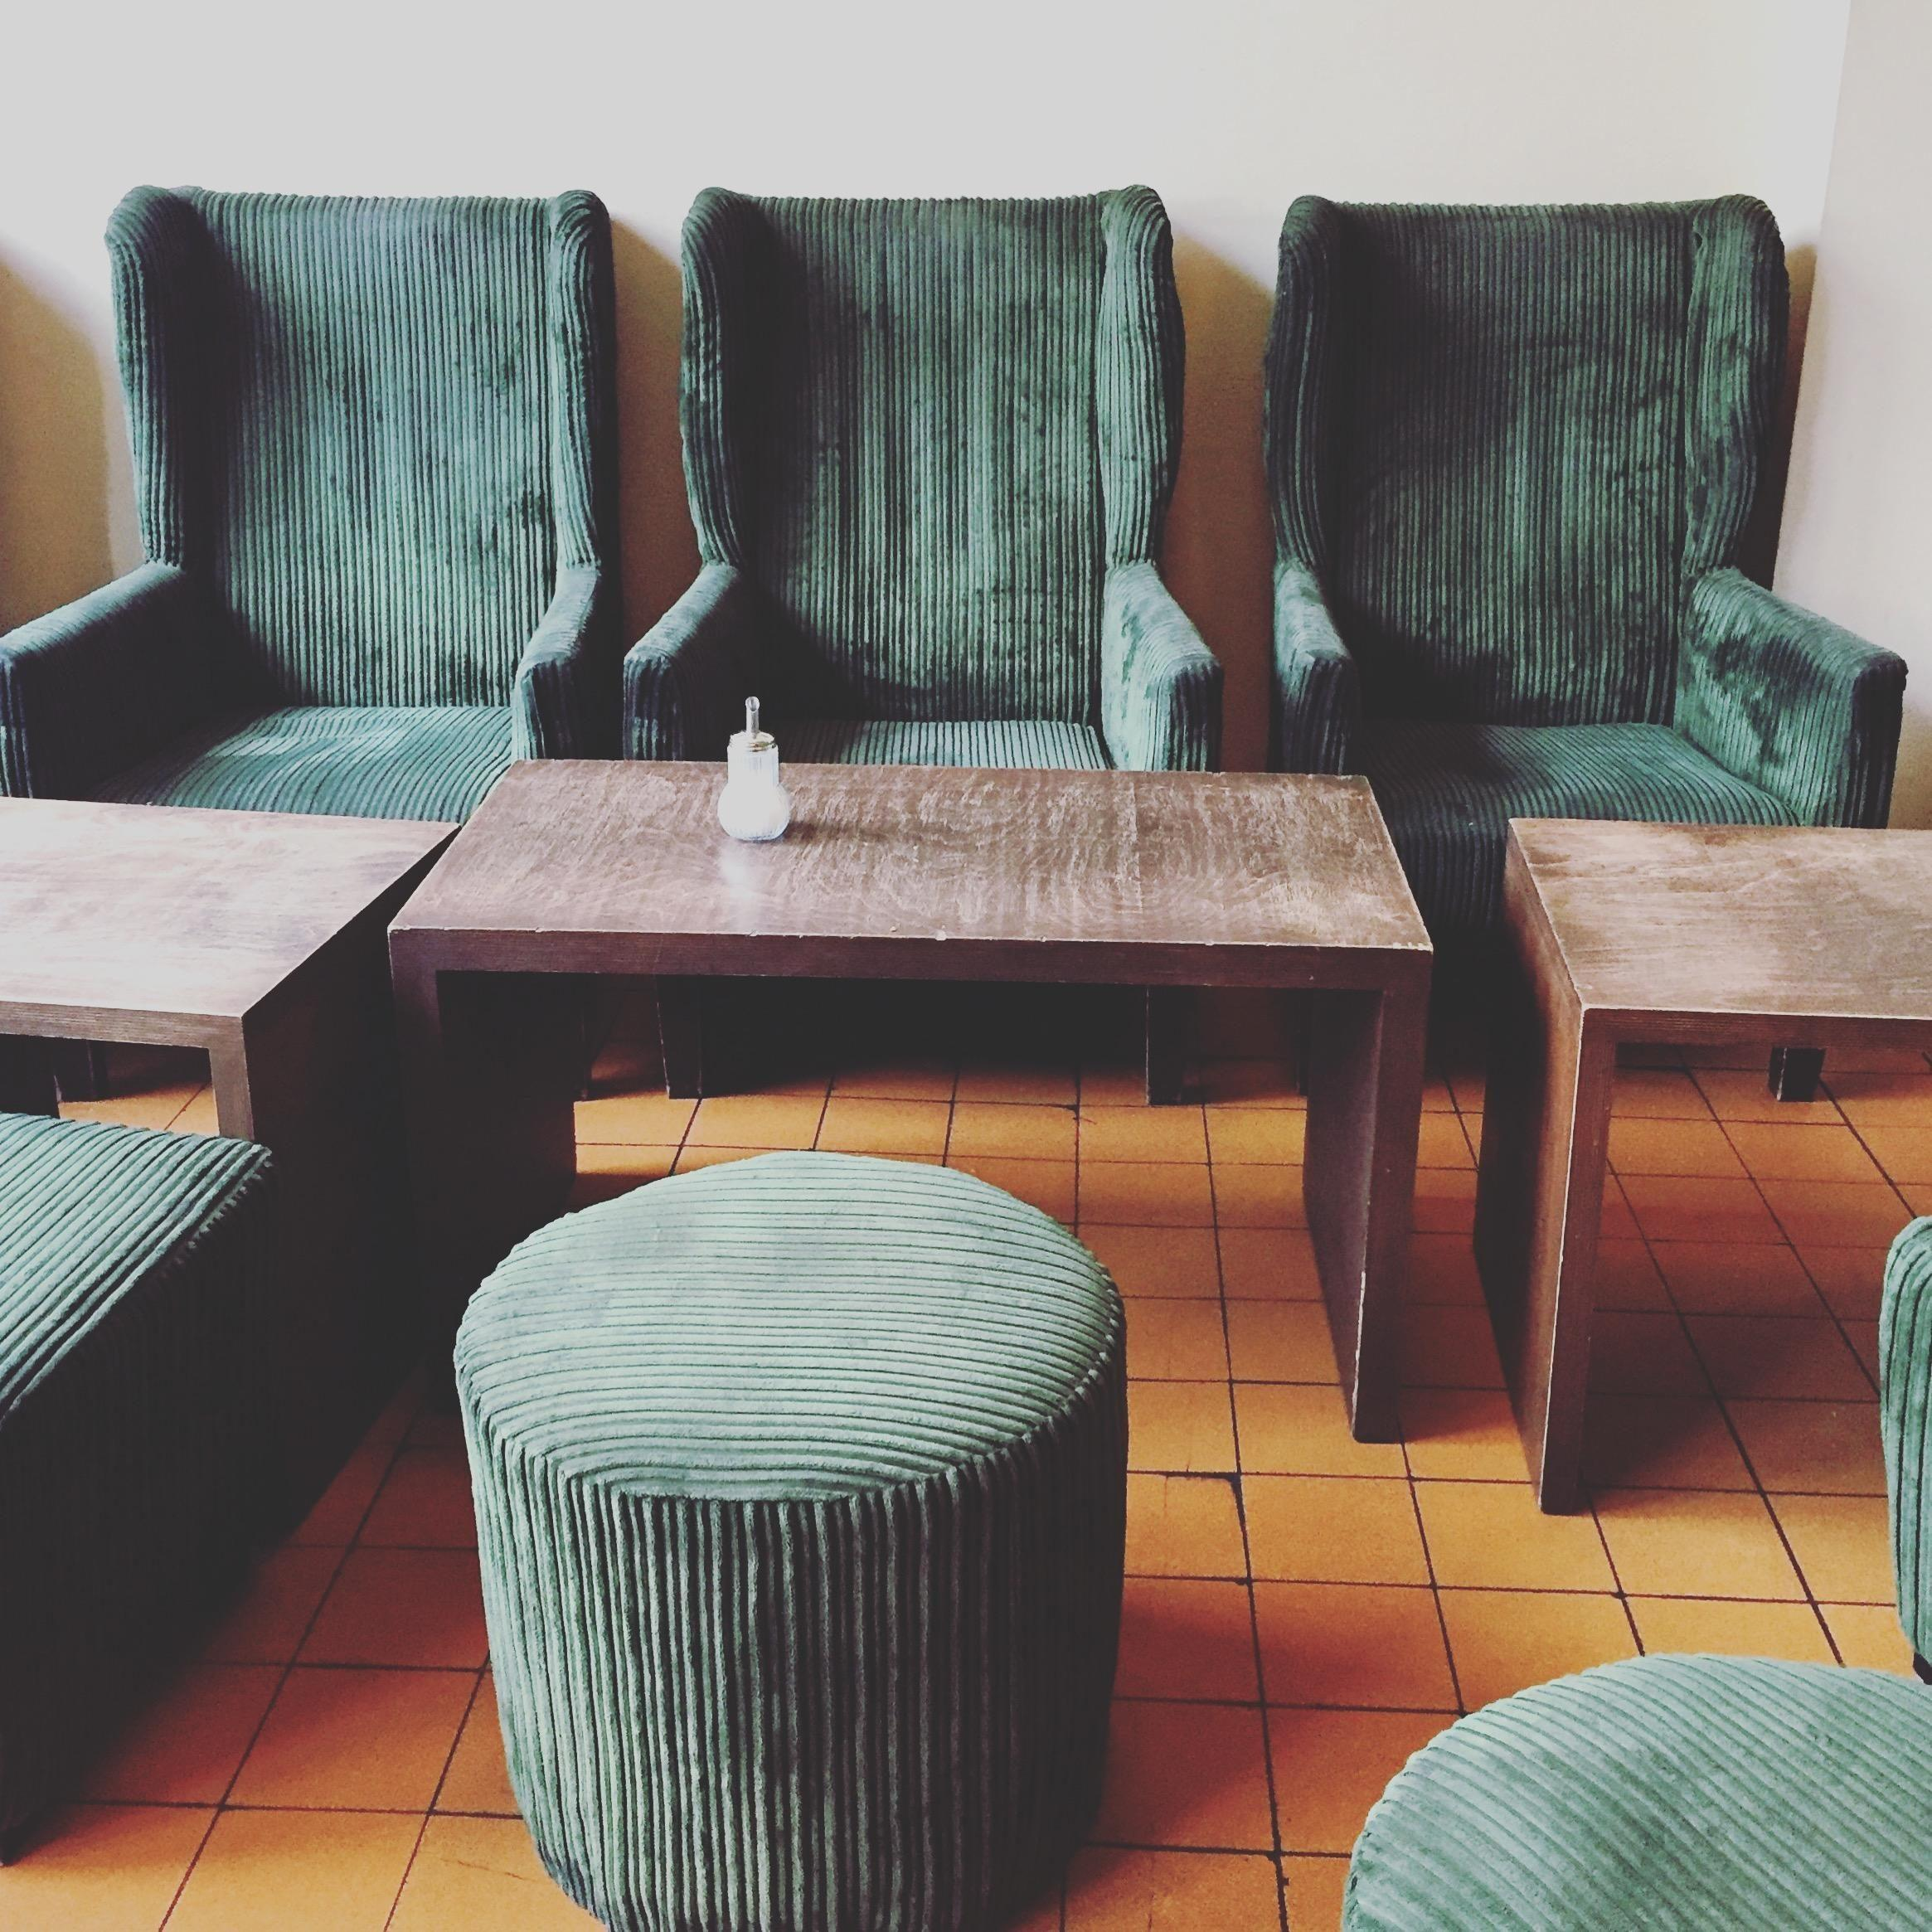 Café-Love!